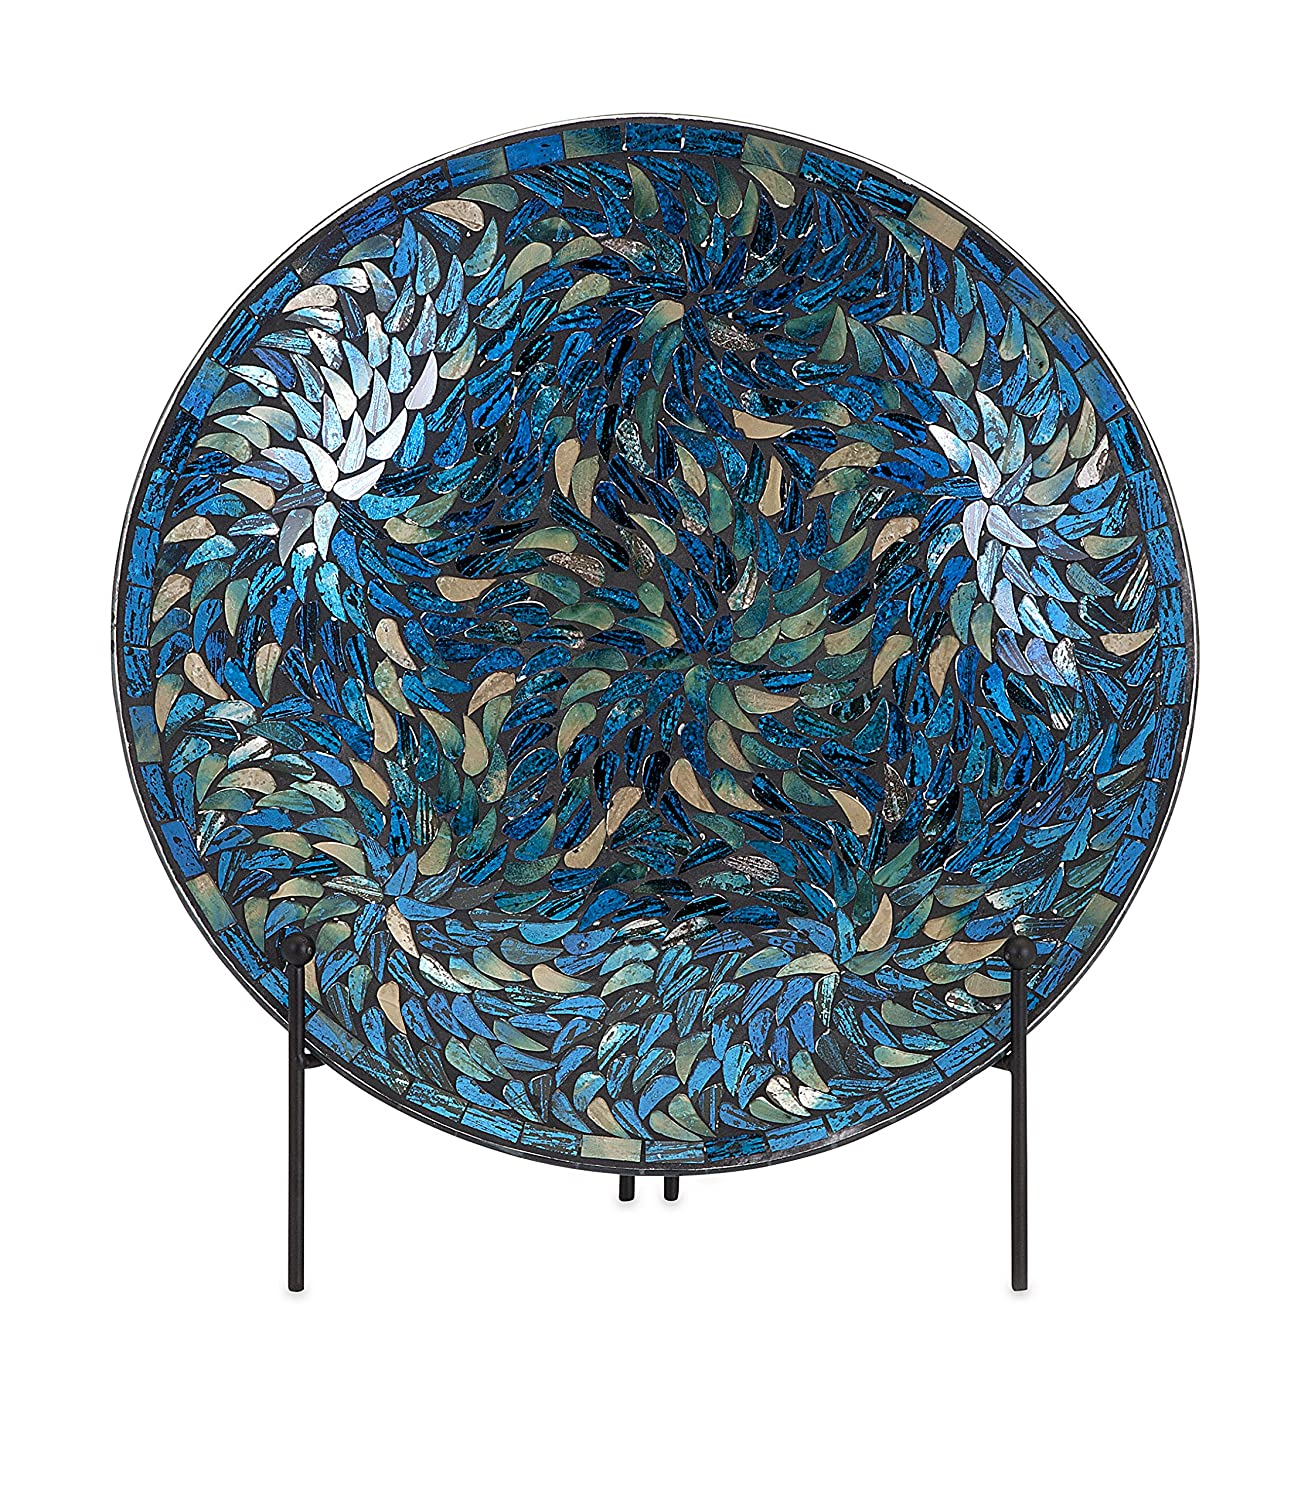 IMAX 80034 Peacock Mosaic Charger and Stand, Blue IMAX Worldwide